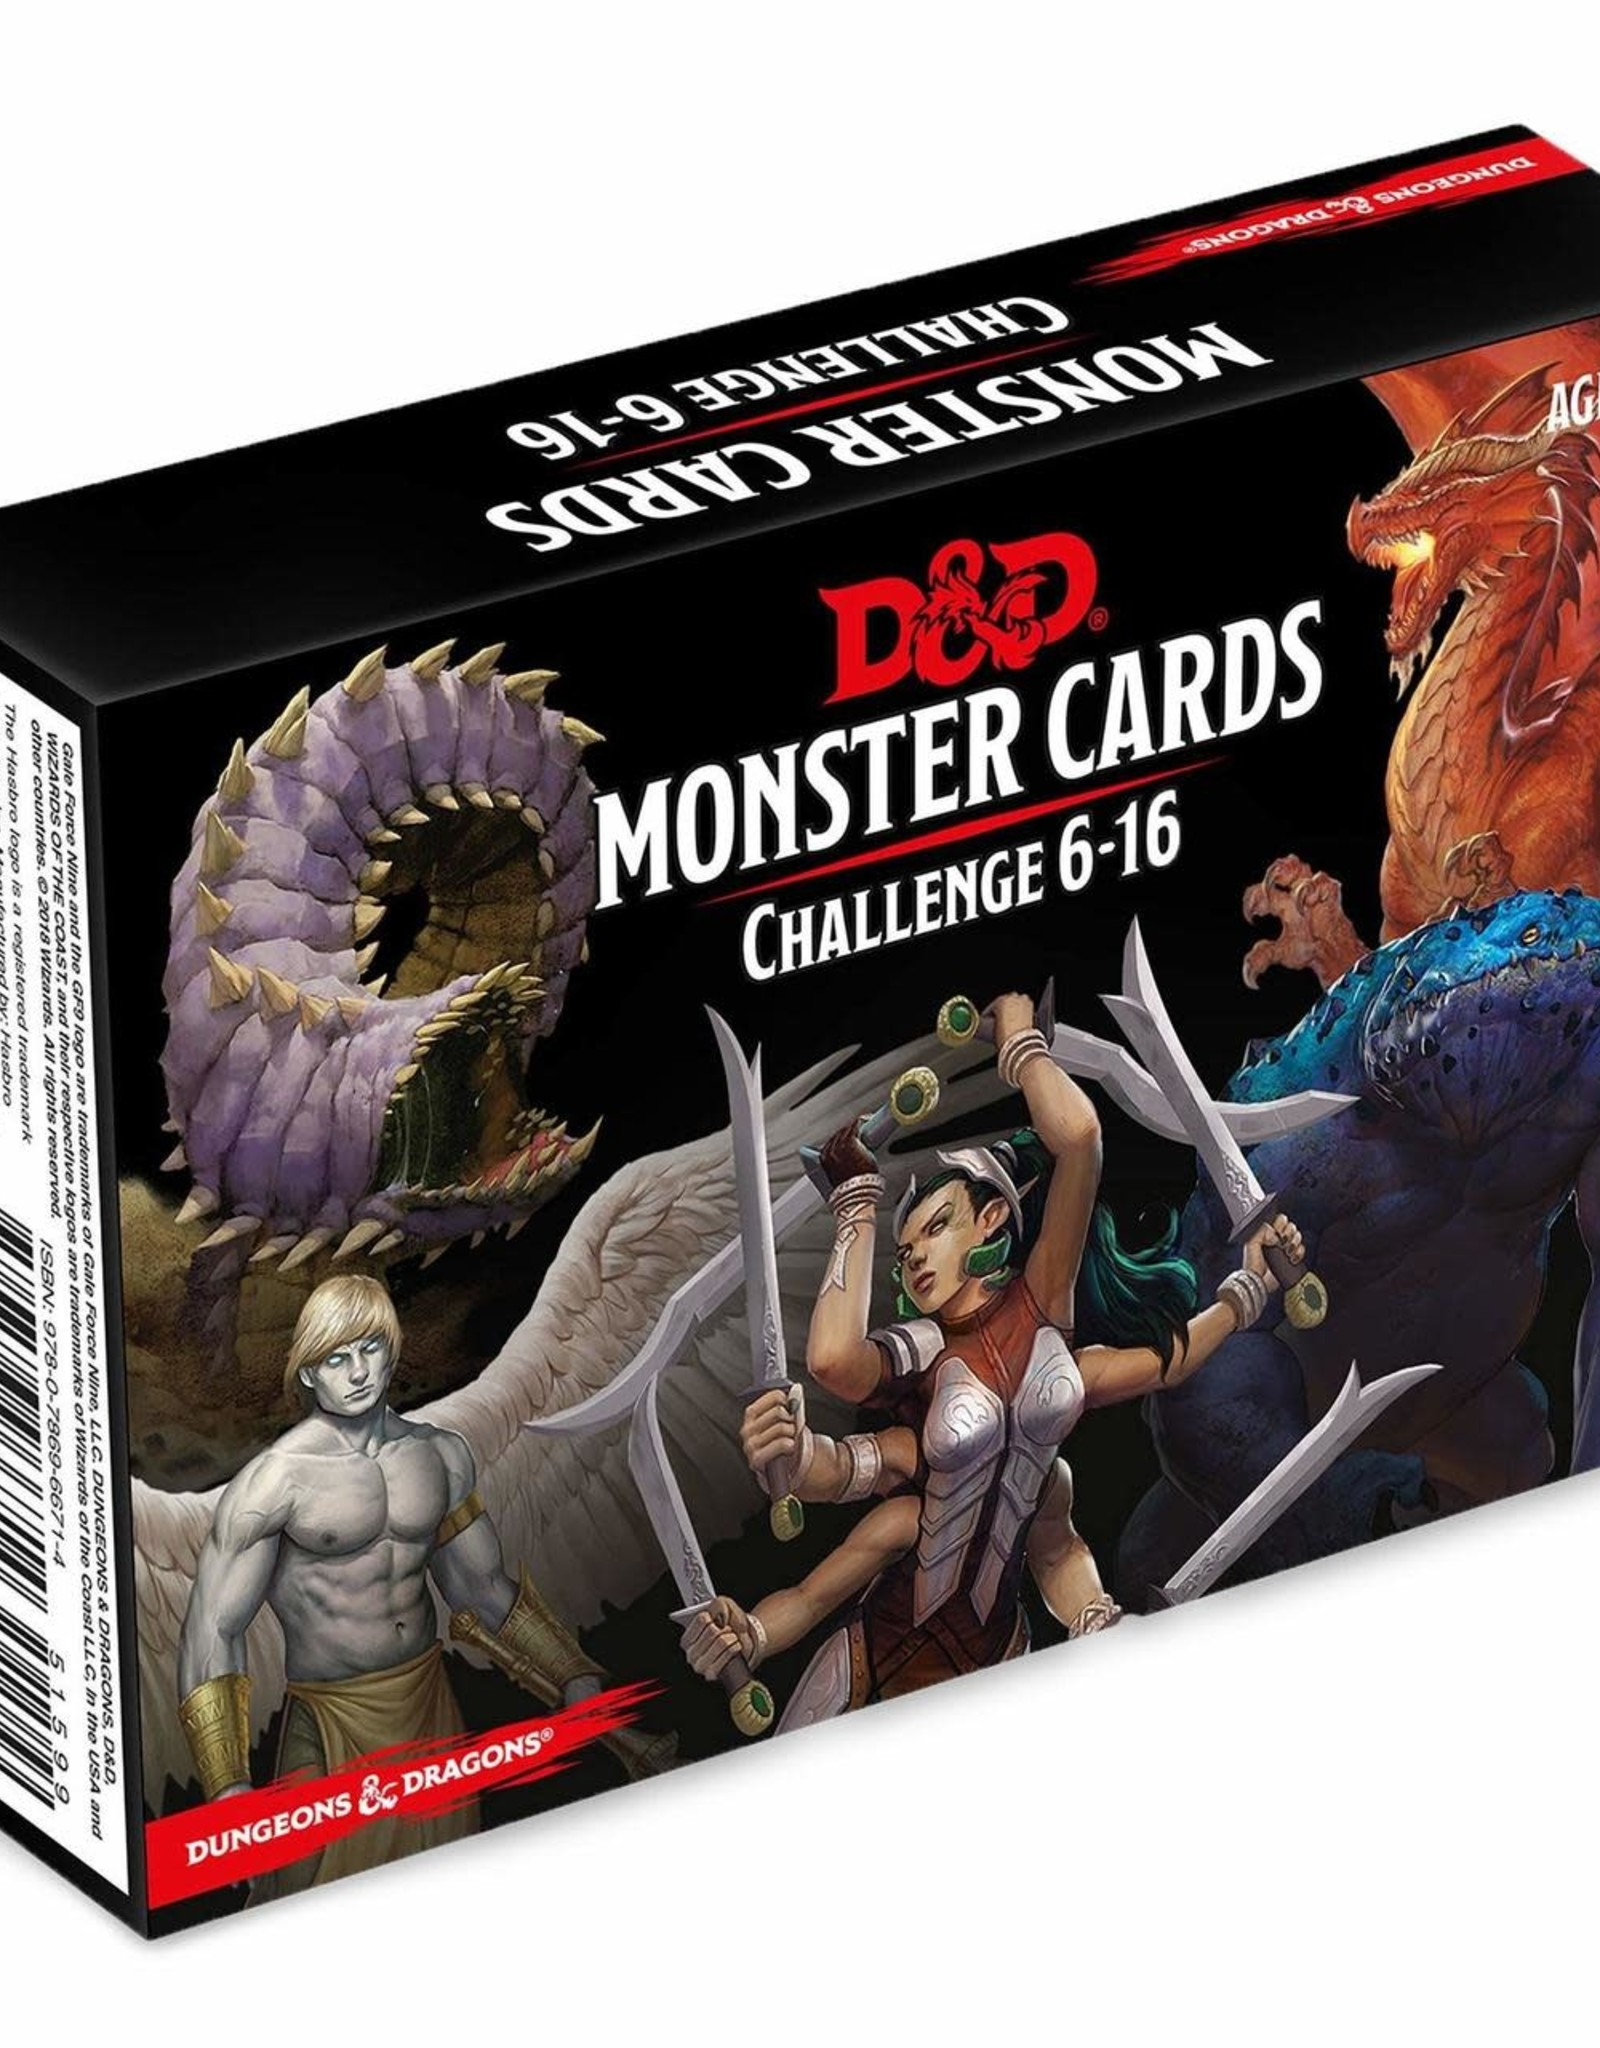 Wizards of the Coast Dungeons & Dragons Monster Cards Challenge 6-16